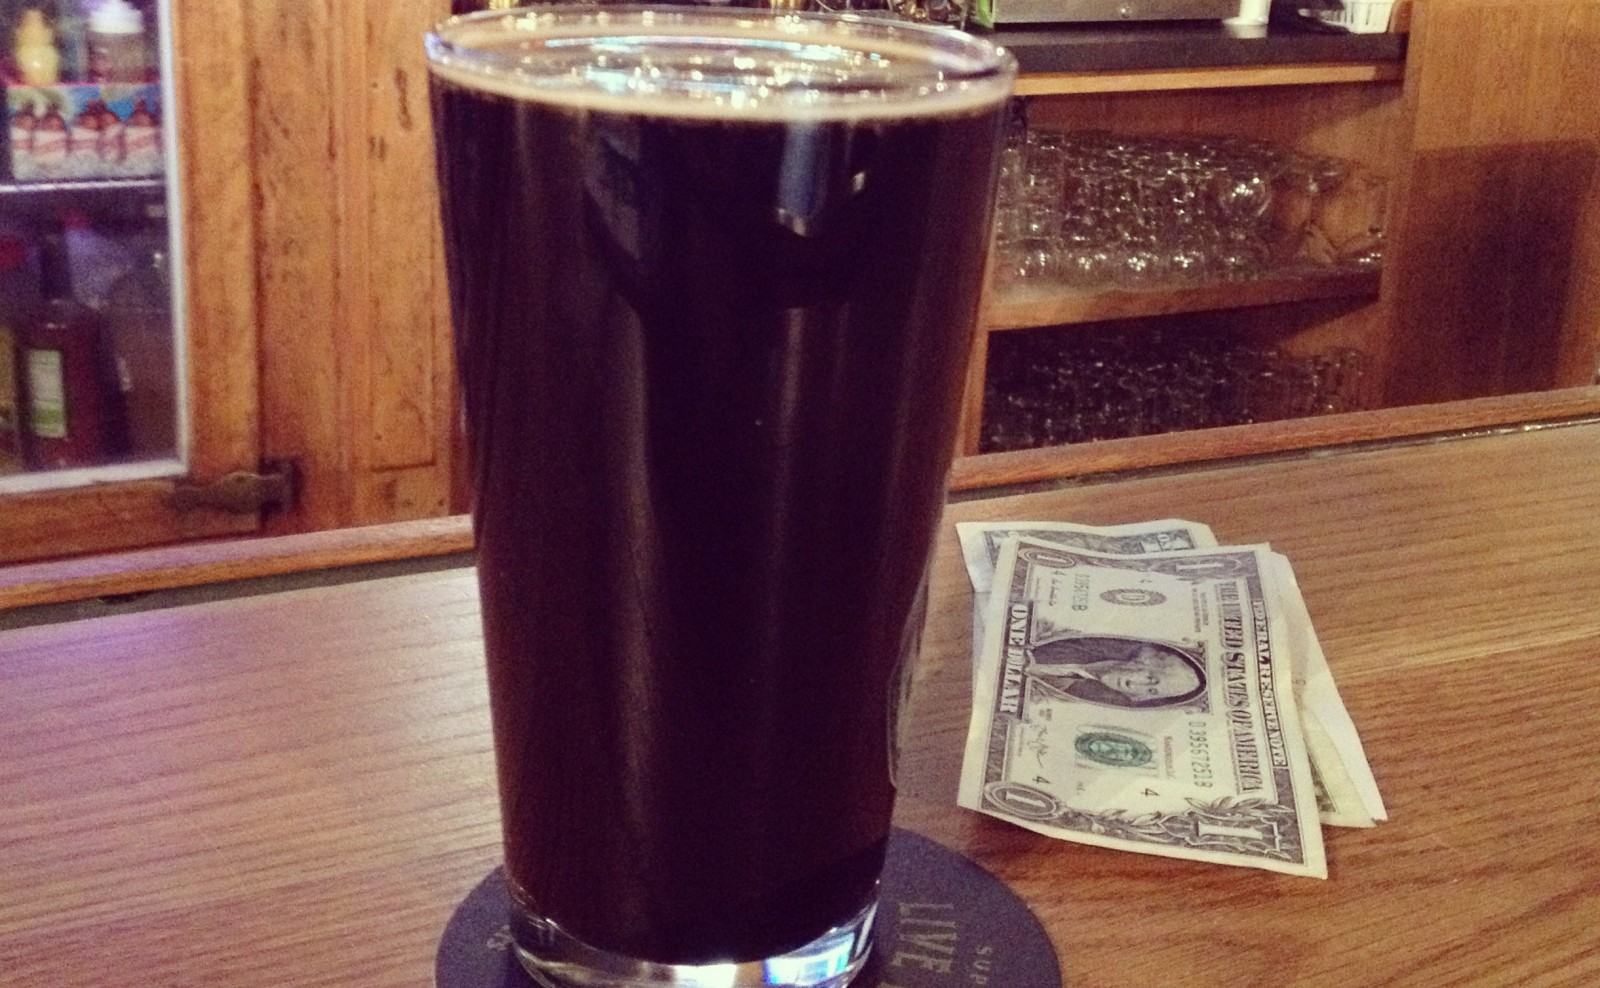 Founders Breakfast Stout at Armor Inn Tap Room. (Michael Farrell/Special to The News)